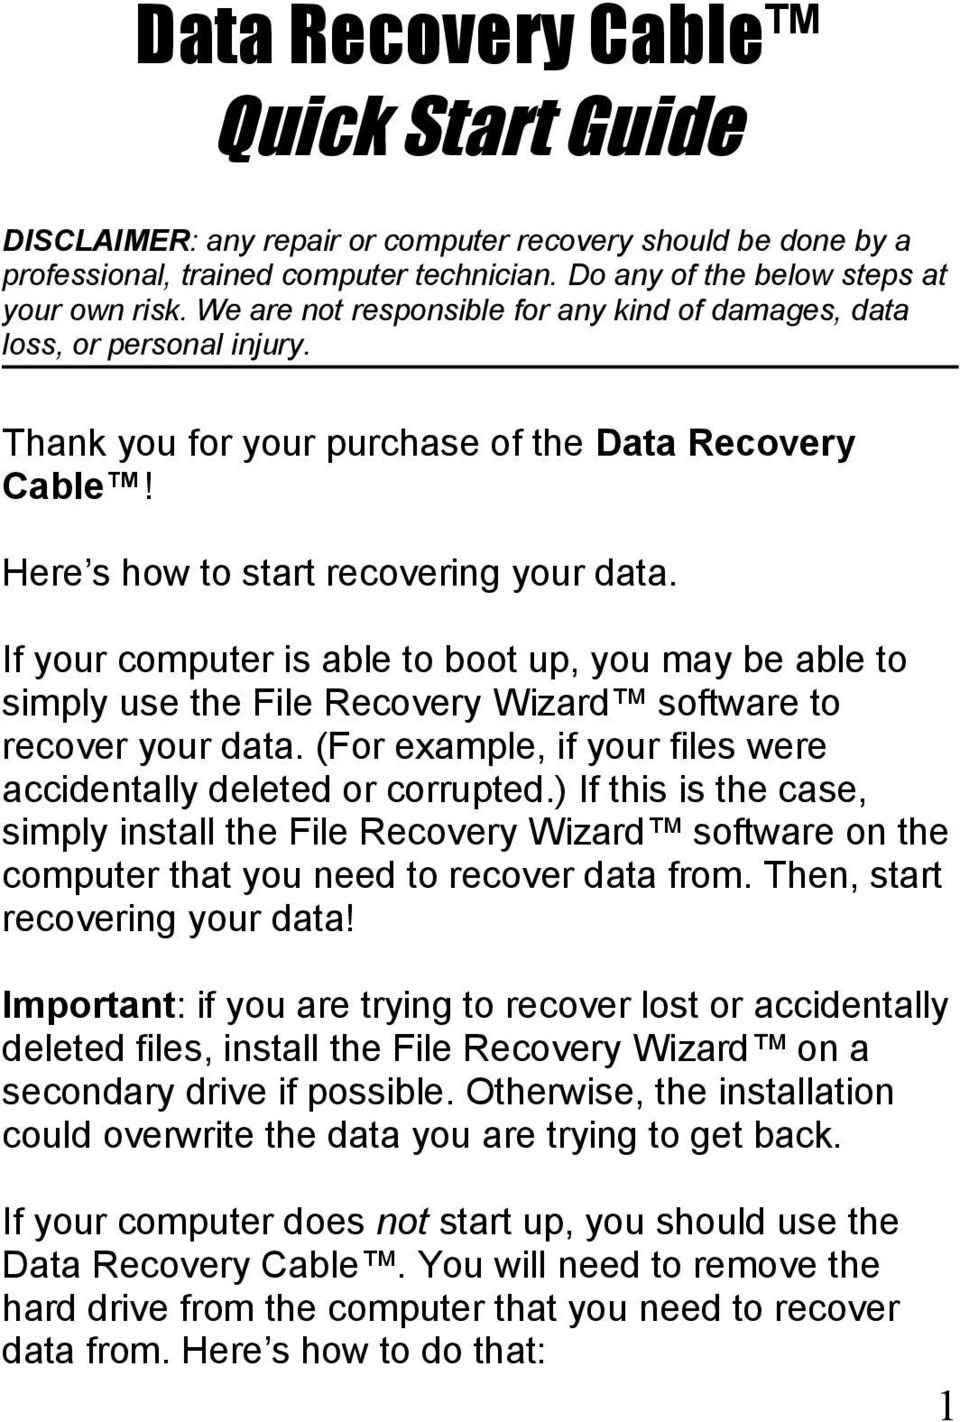 If your computer is able to boot up, you may be able to simply use the File Recovery Wizard software to recover your data. (For example, if your files were accidentally deleted or corrupted.